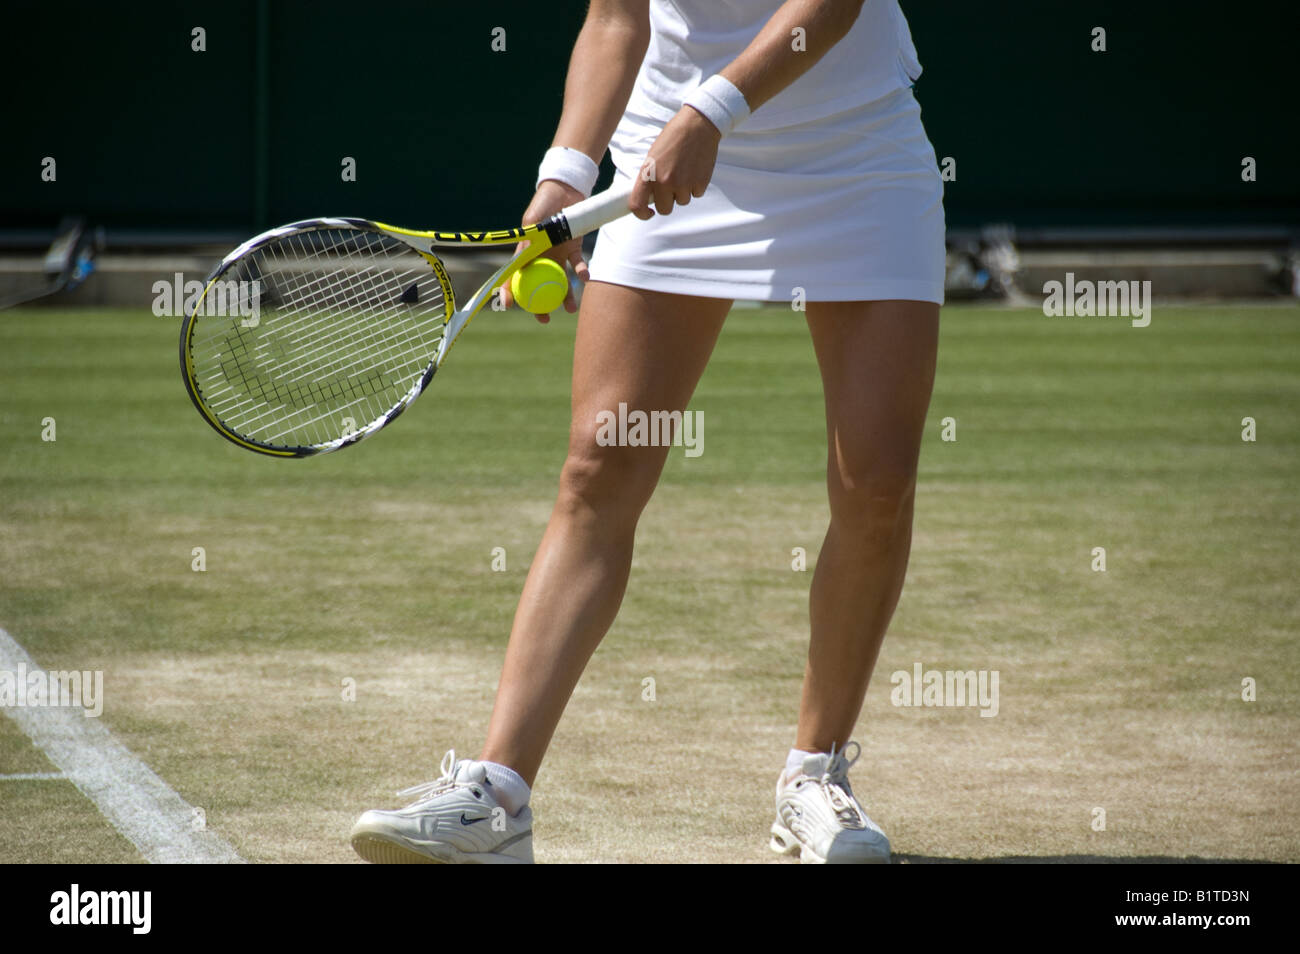 Tennis Serving Stance Stock Photo 18362169 Alamy